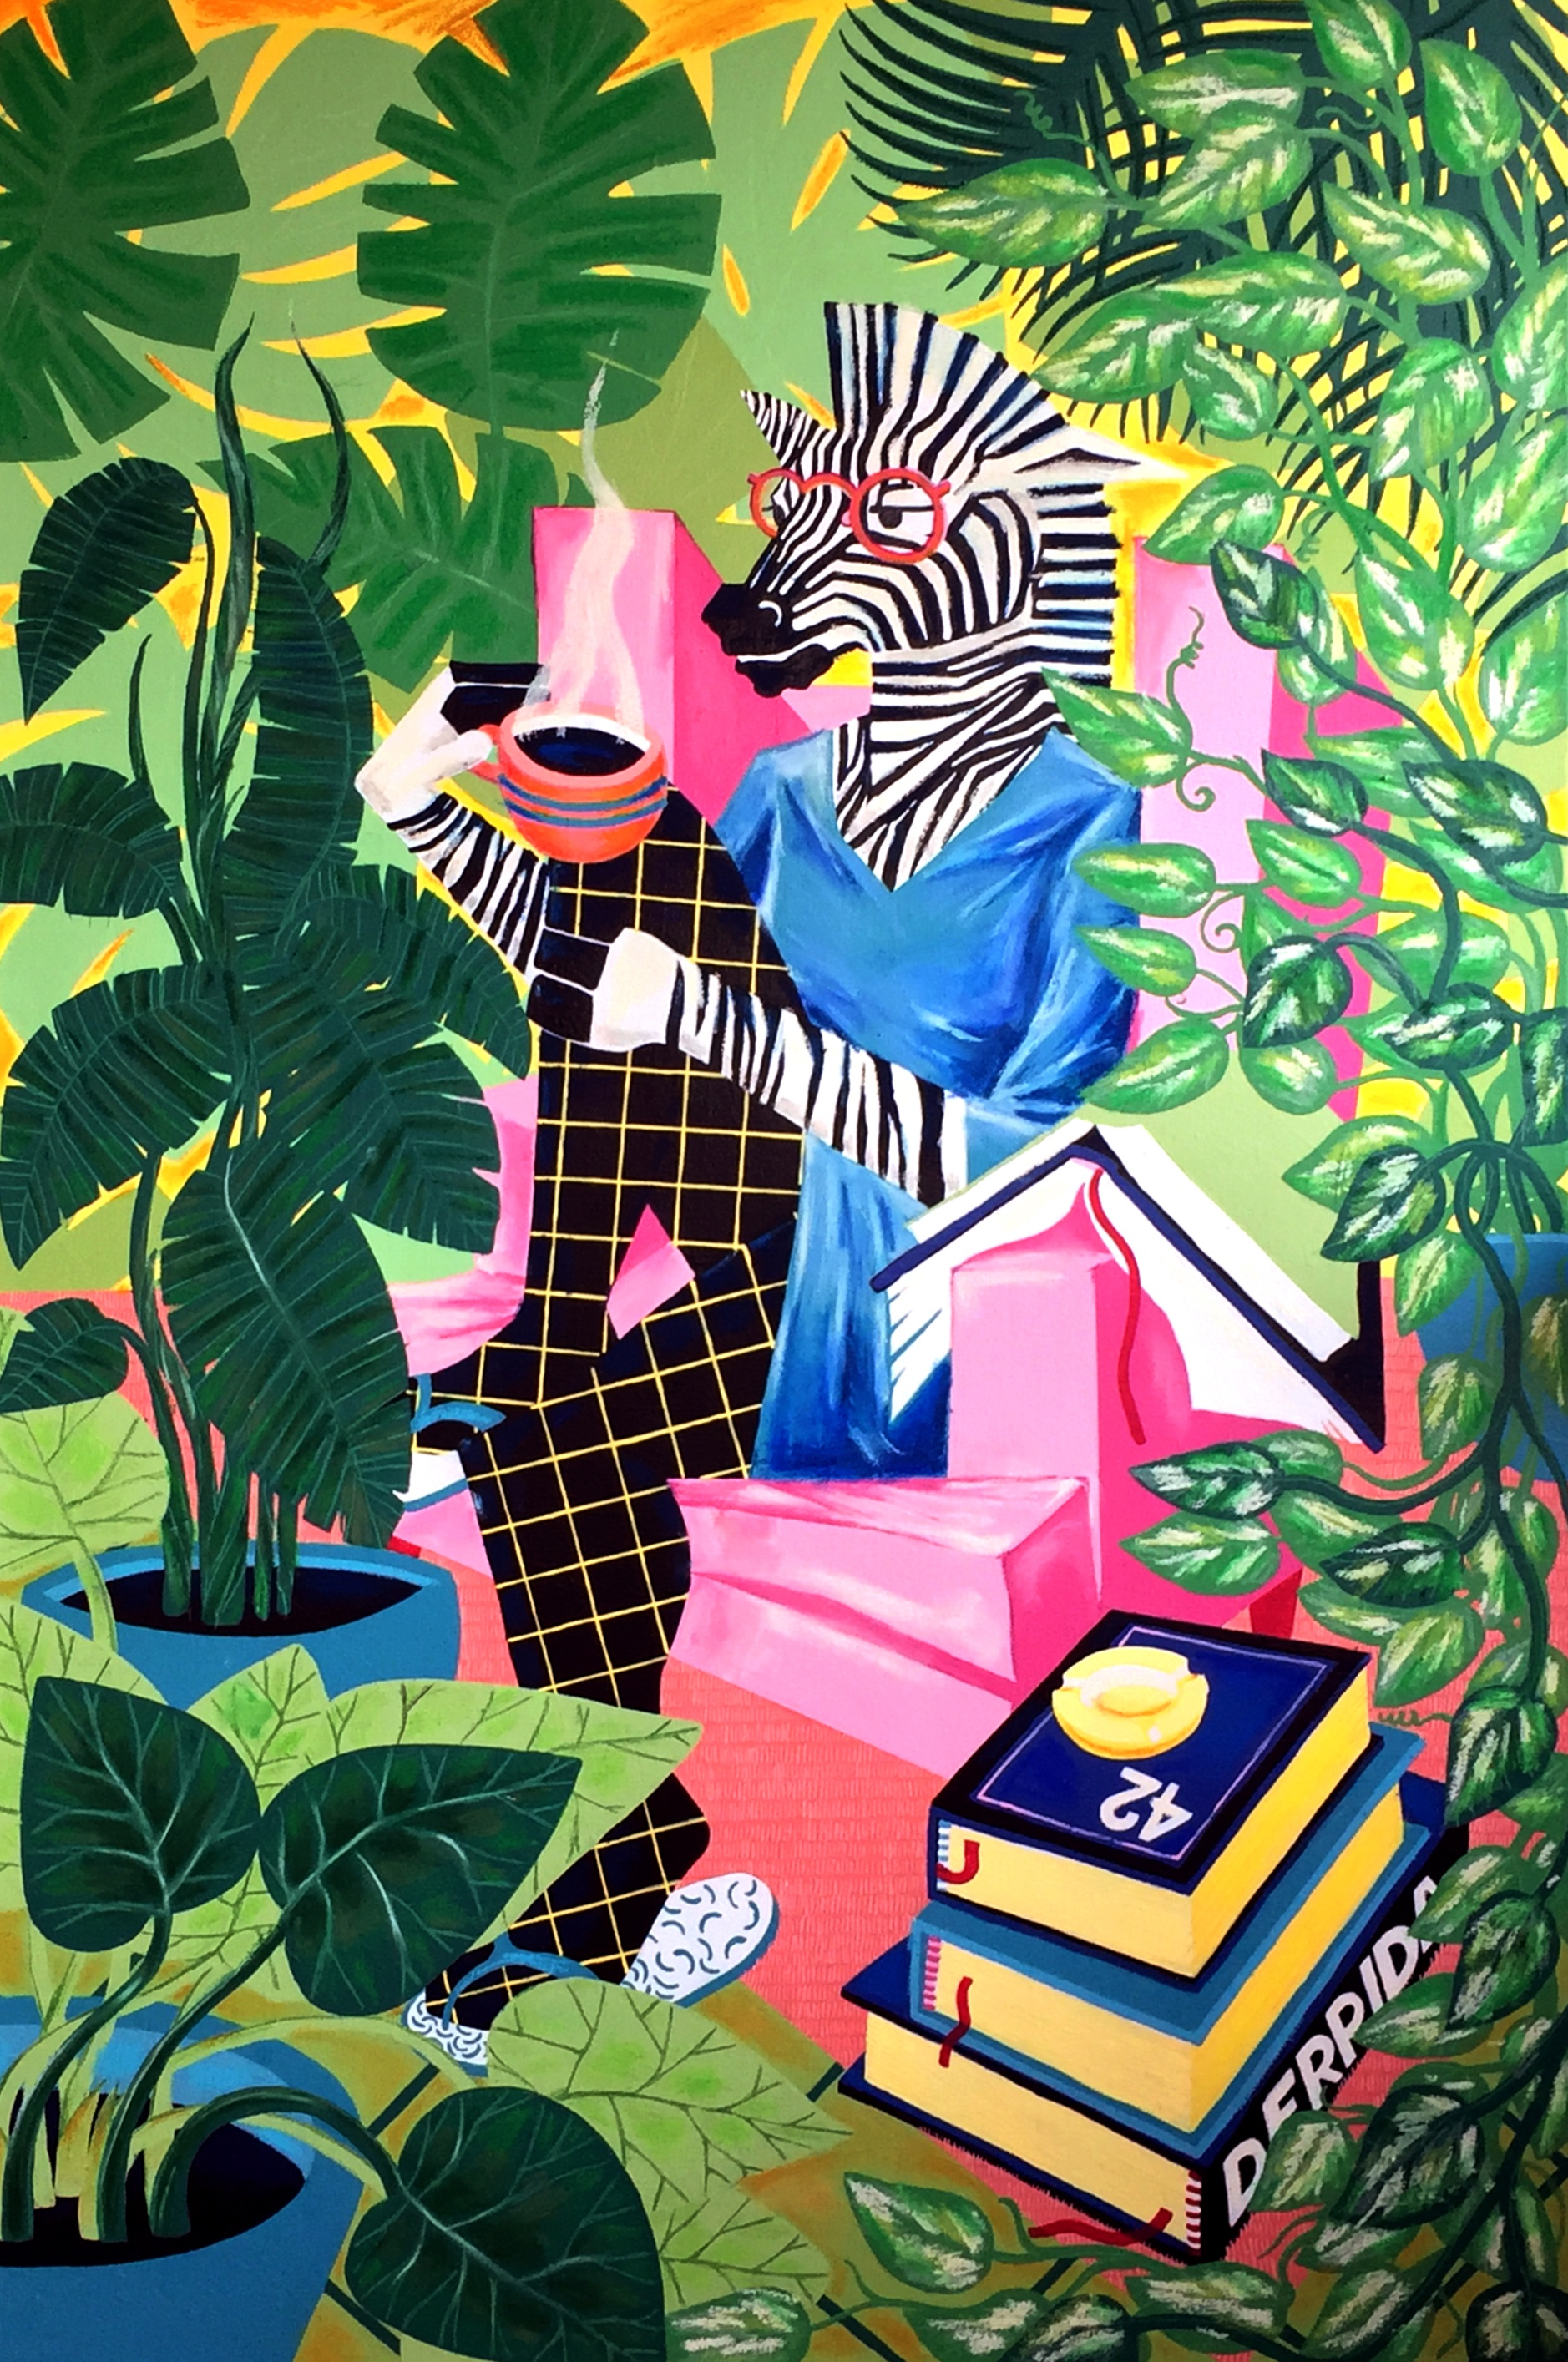 """Zebra Lady - """"Zebra Lady""""was selected for #ArtElevated, the first street exhibition organized by Orangenius and the The Garment District, on display on 38th Street in Manhattan."""